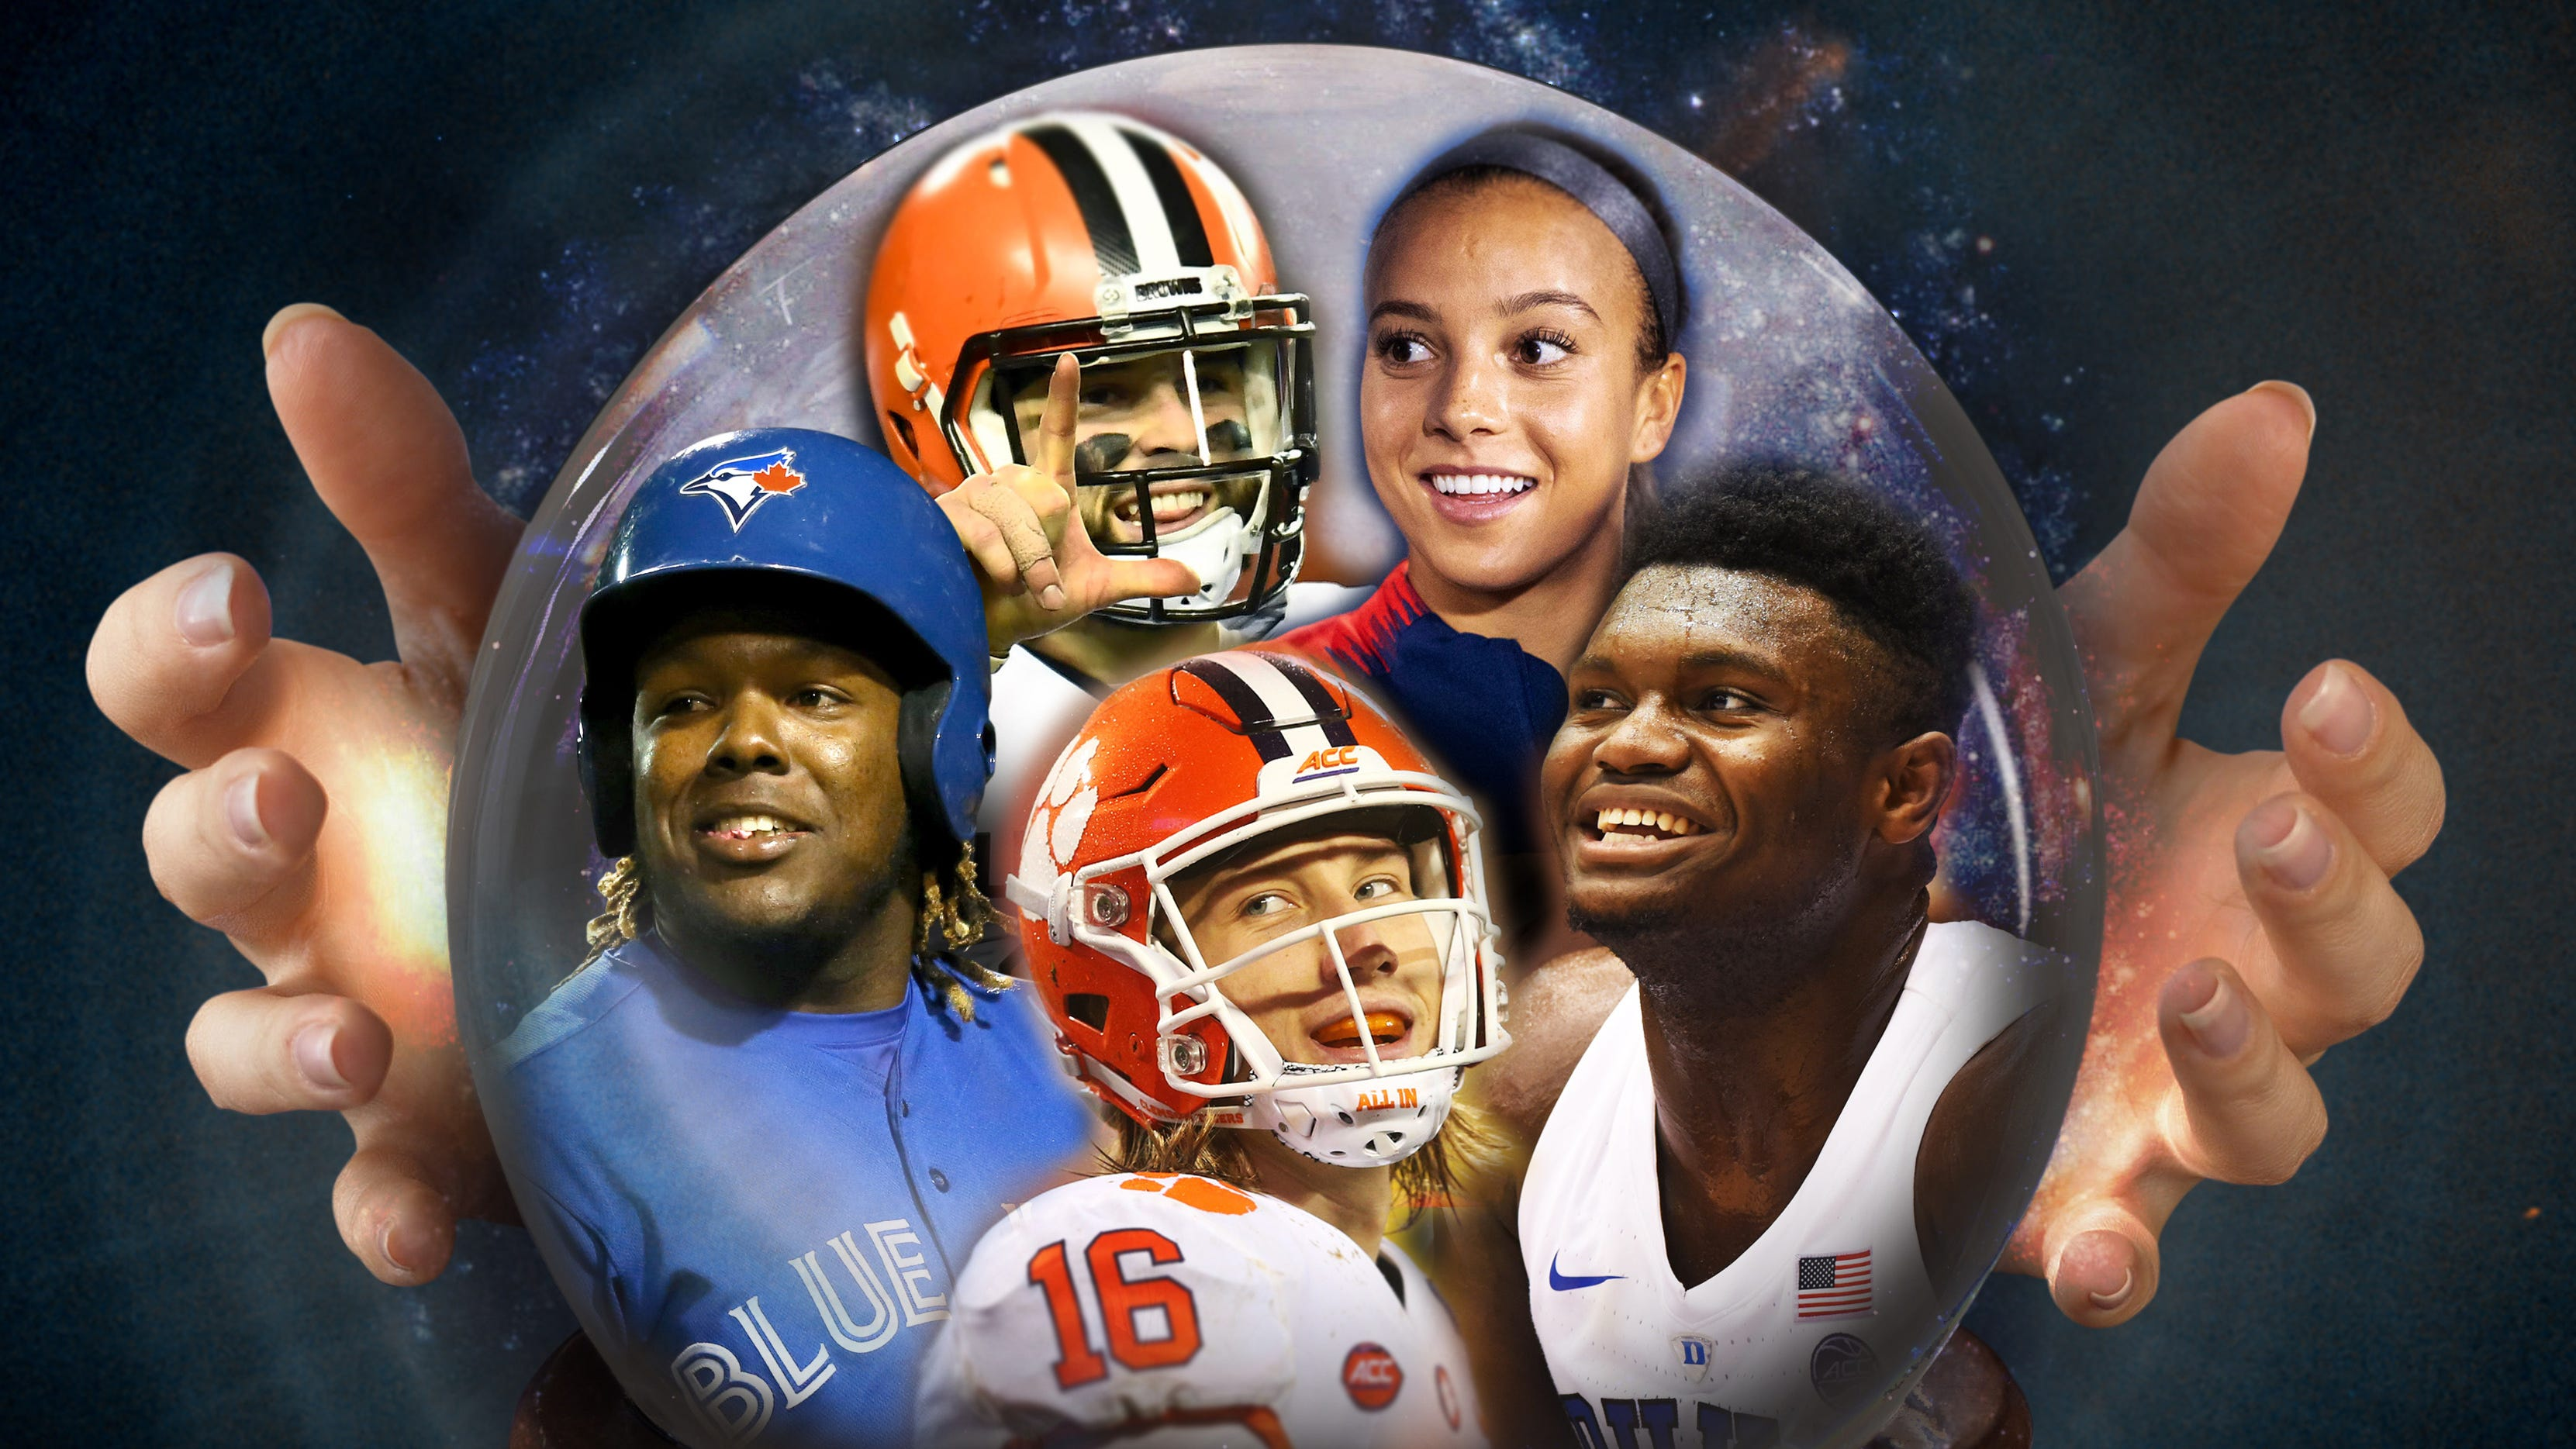 2019 athletes who will likely emerge as stars in the new year